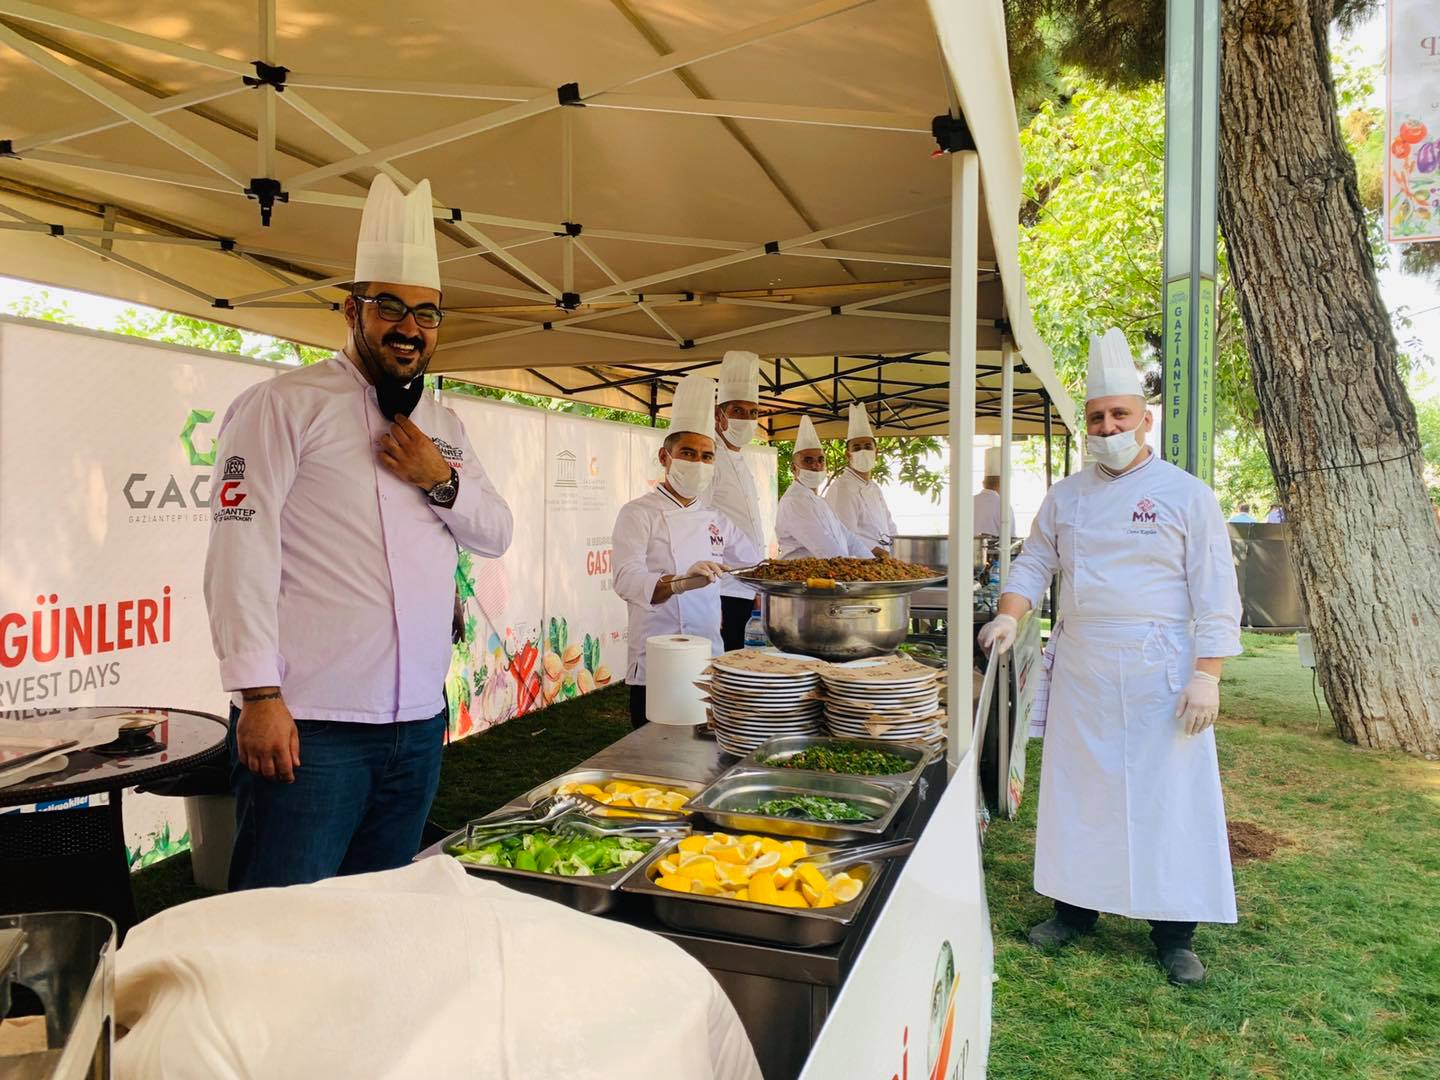 GastroAntep 2020 Introduction to Gaziantep's Annual Gastronomy Festival27